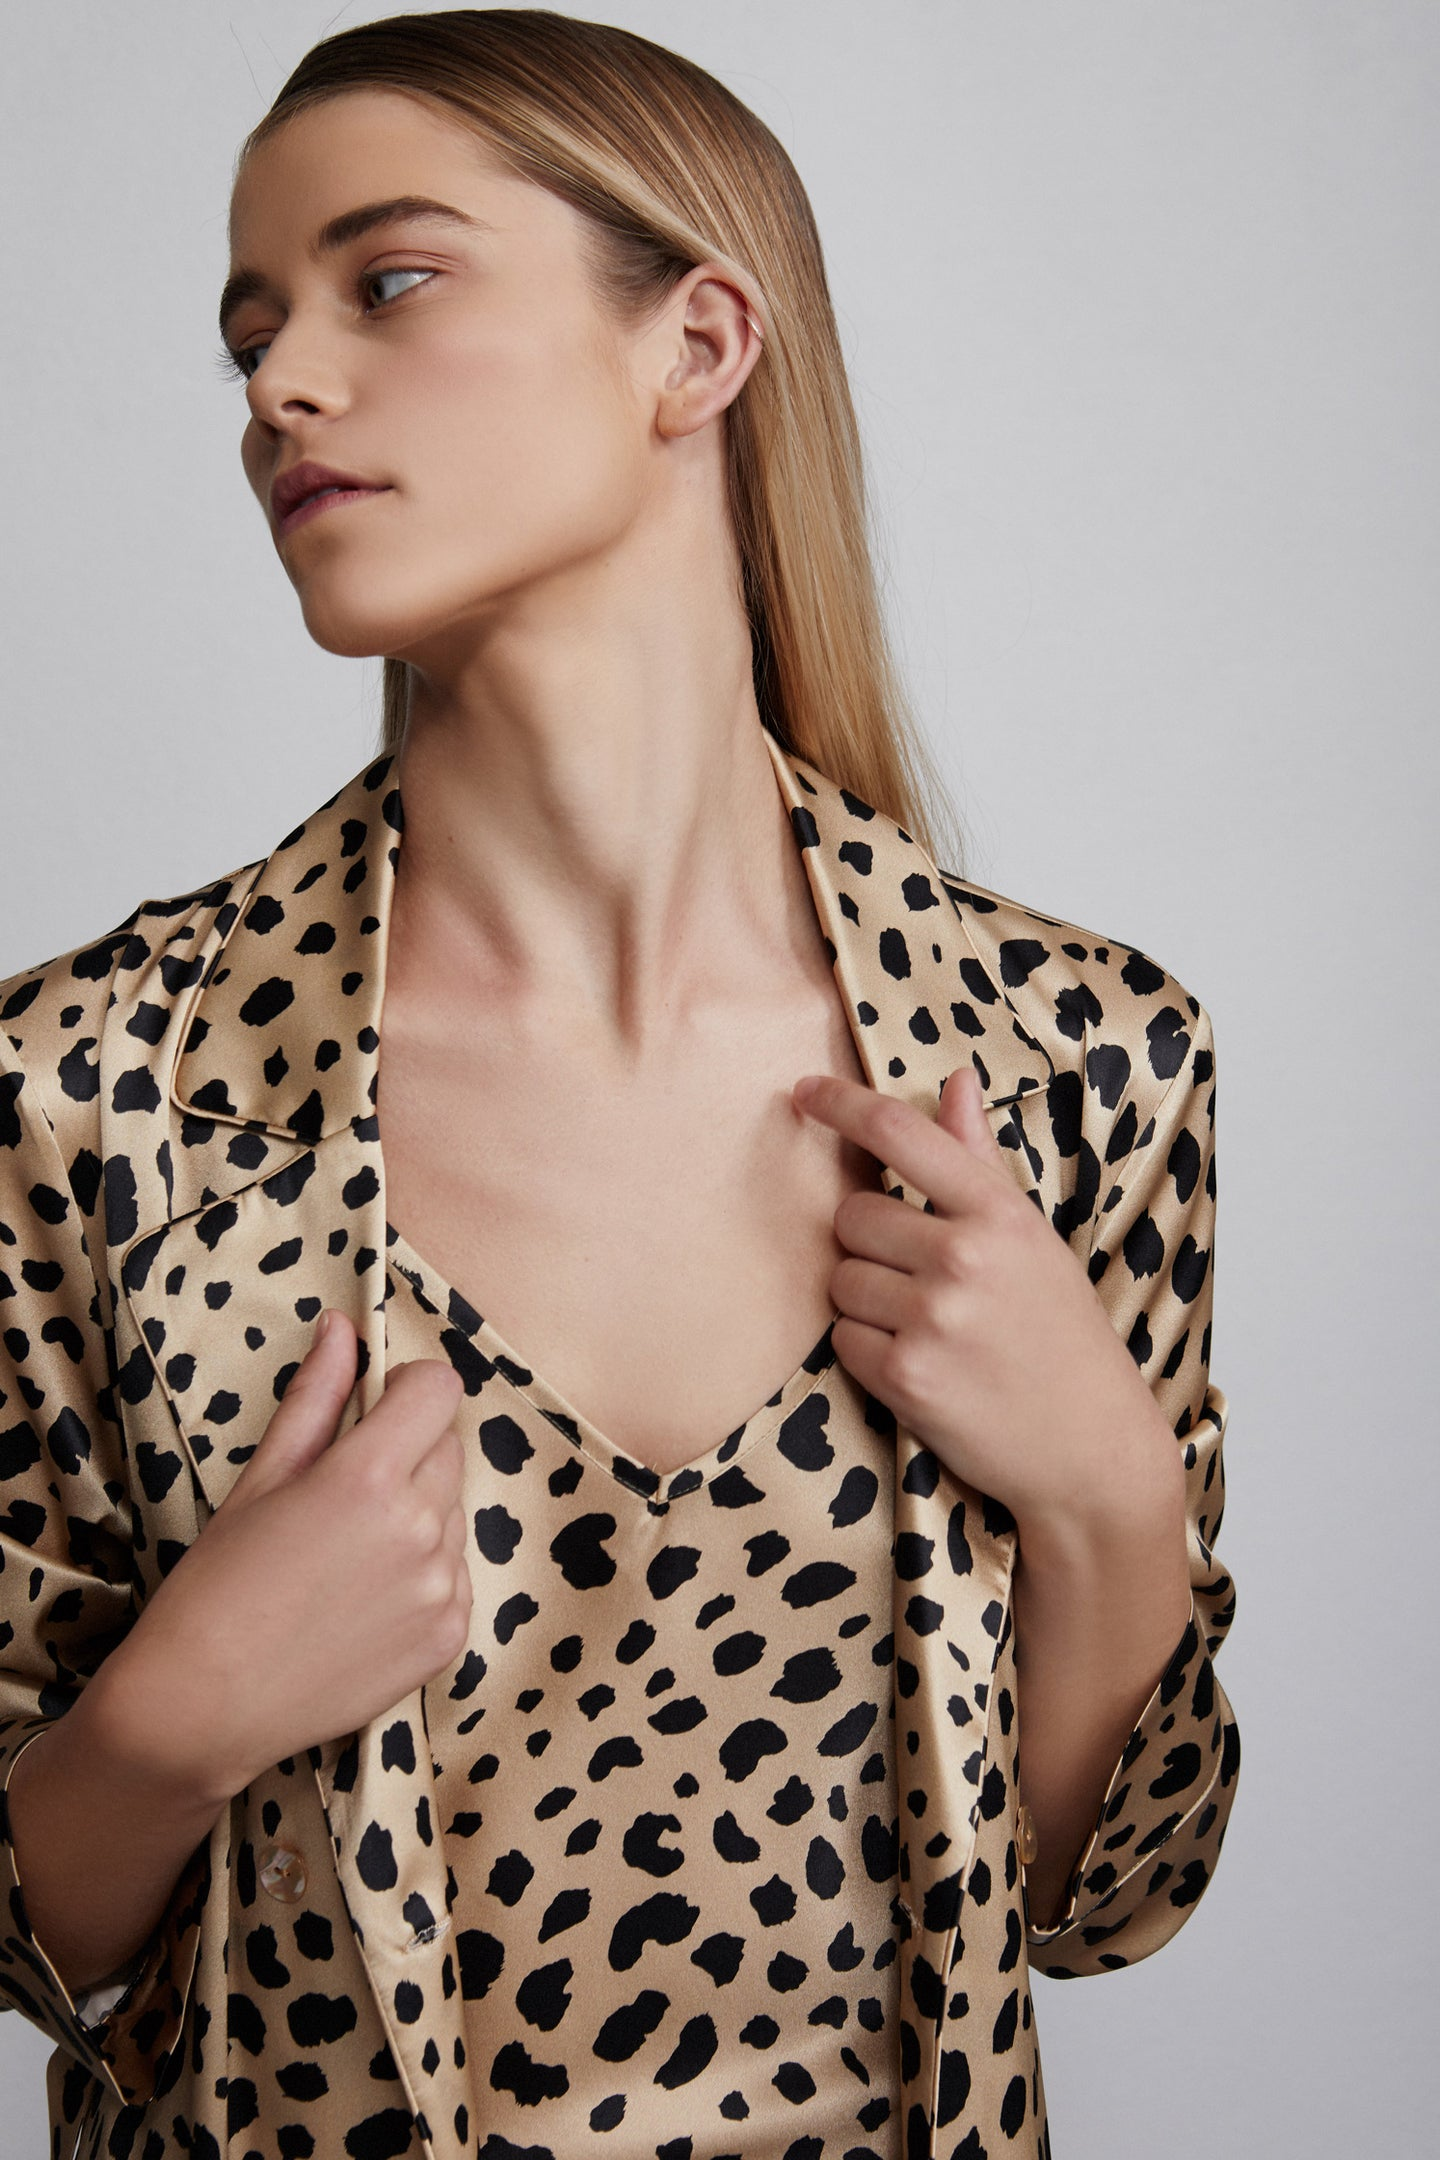 Double breasted silk robe dressing gown, leopard print, detail view